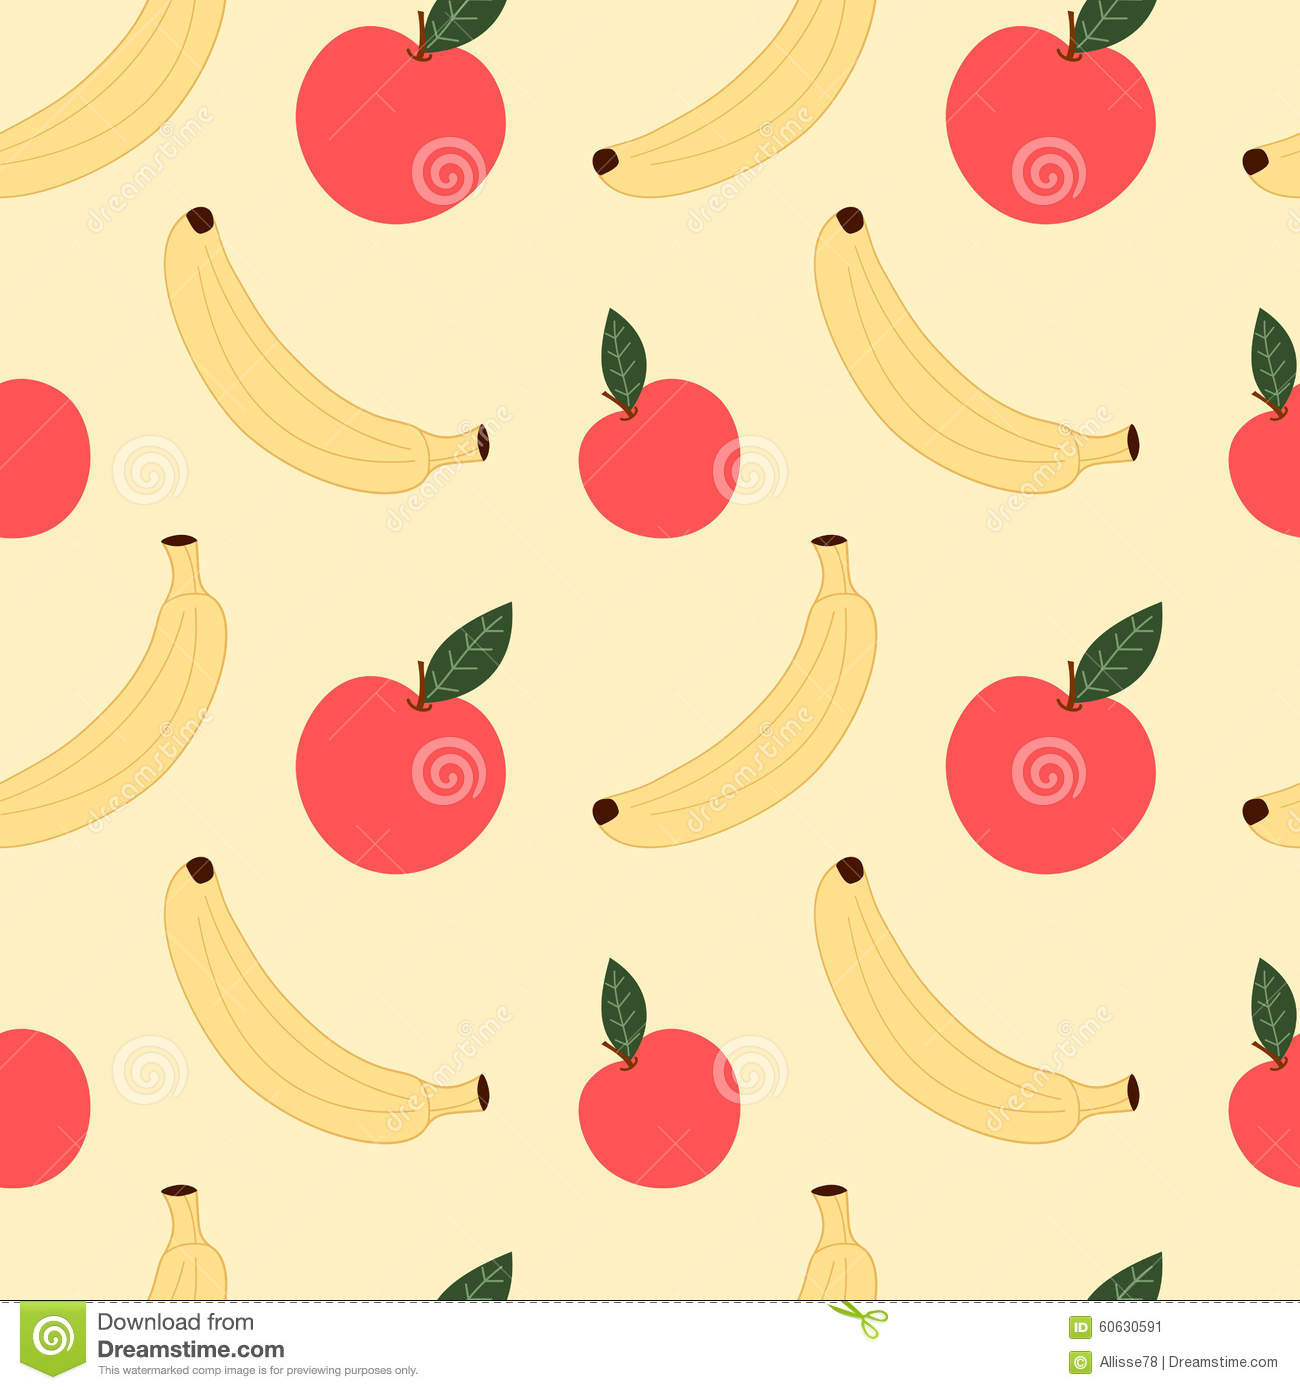 Wonderful Wallpaper Macbook Pattern - banana-apple-seamless-pattern-background-illustration-vector-60630591  You Should Have_8575.jpg